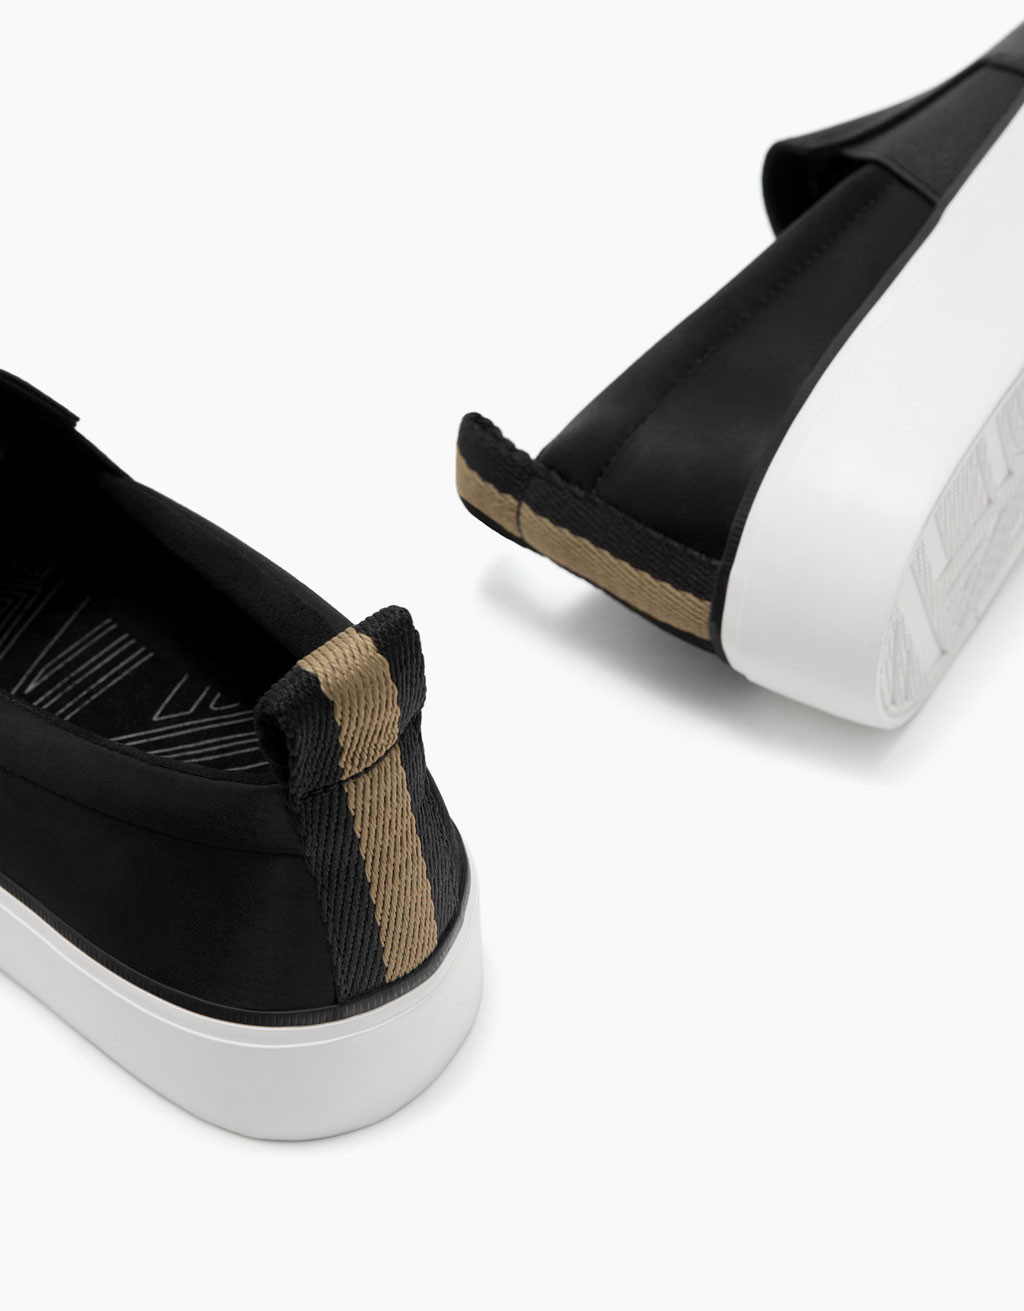 Satin sneakers with elastic side panels